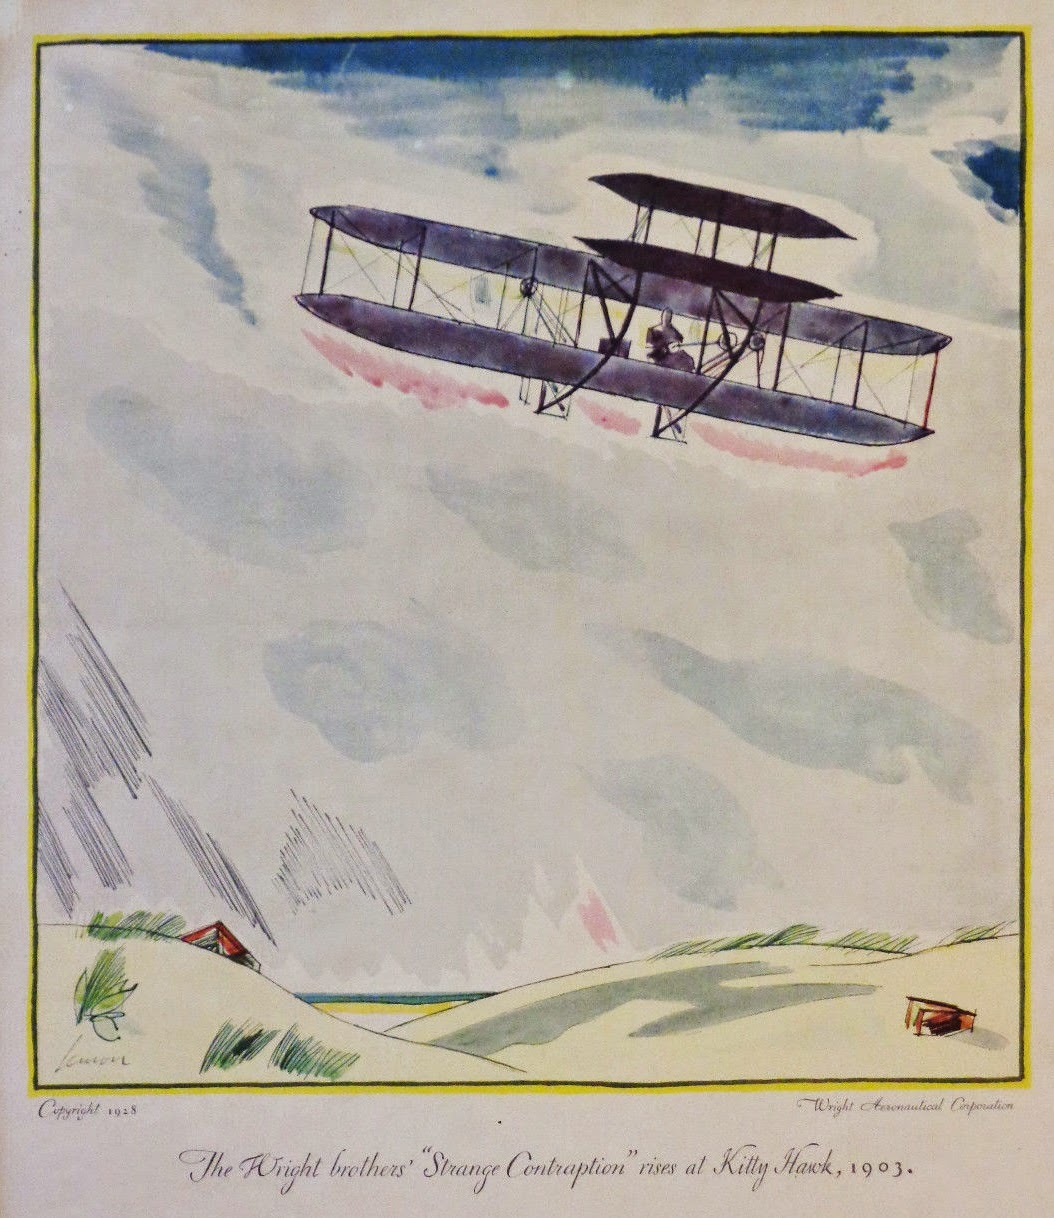 1908 flyer incorrectly represented as the 1903 flyer in artwork